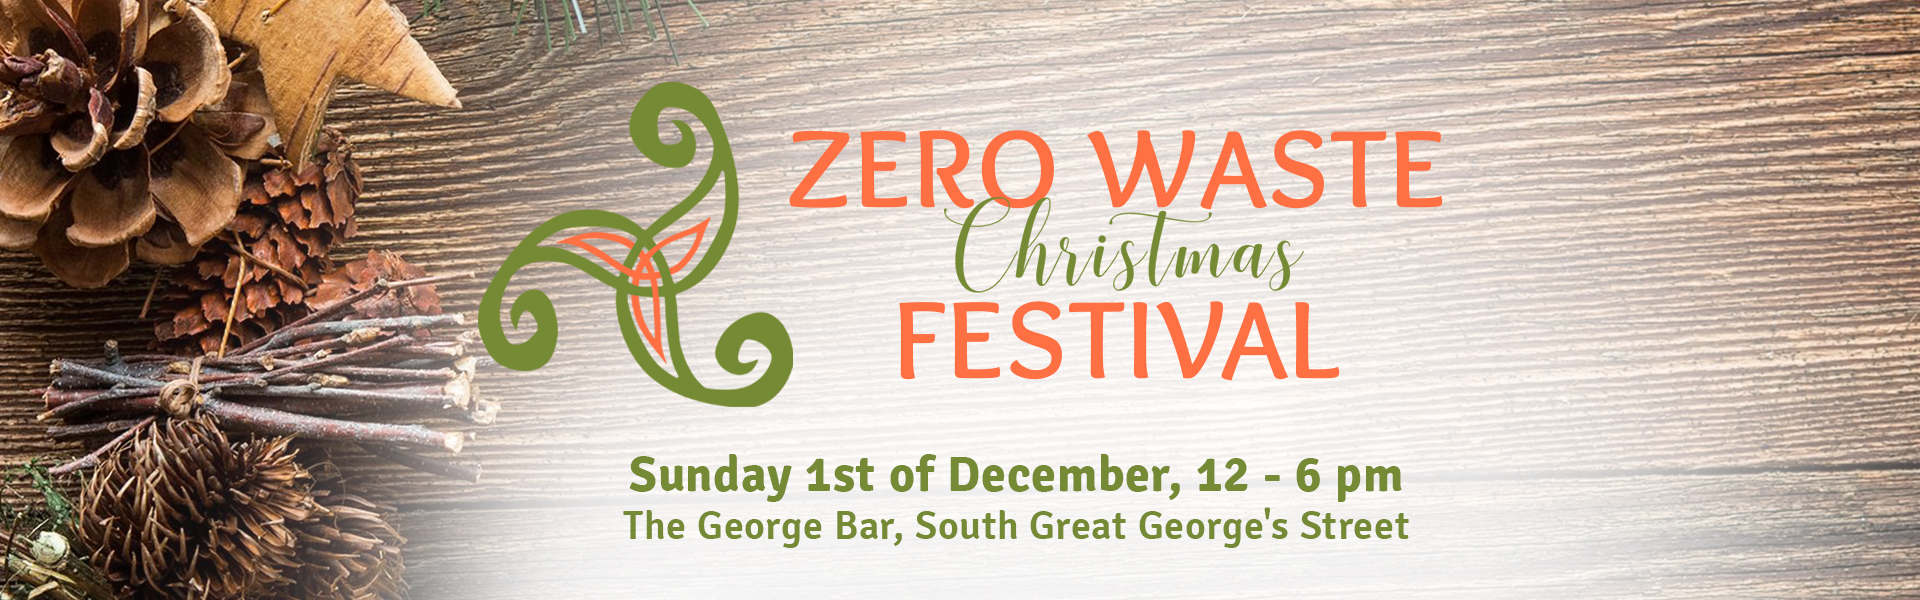 Zero Waste Christmas Festival at The George